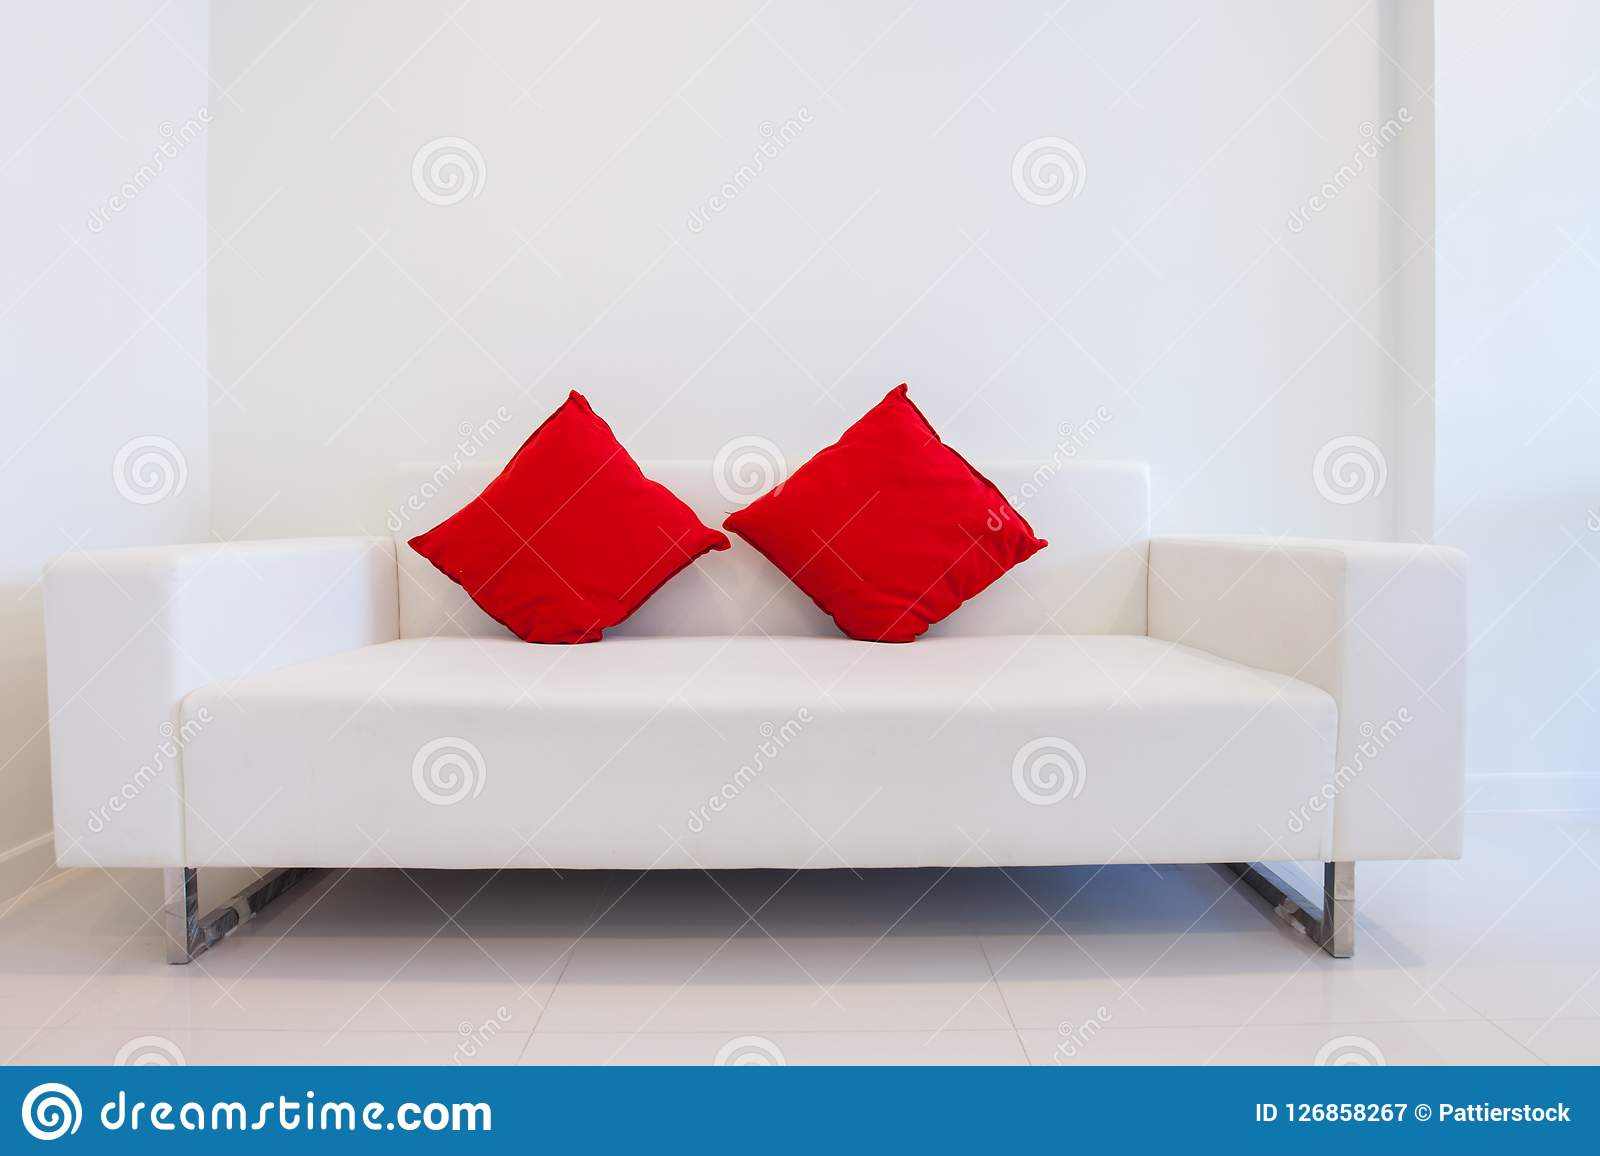 Modern White Sofa With Red Pillows Stock Image Image Of Decorative Elegant 126858267